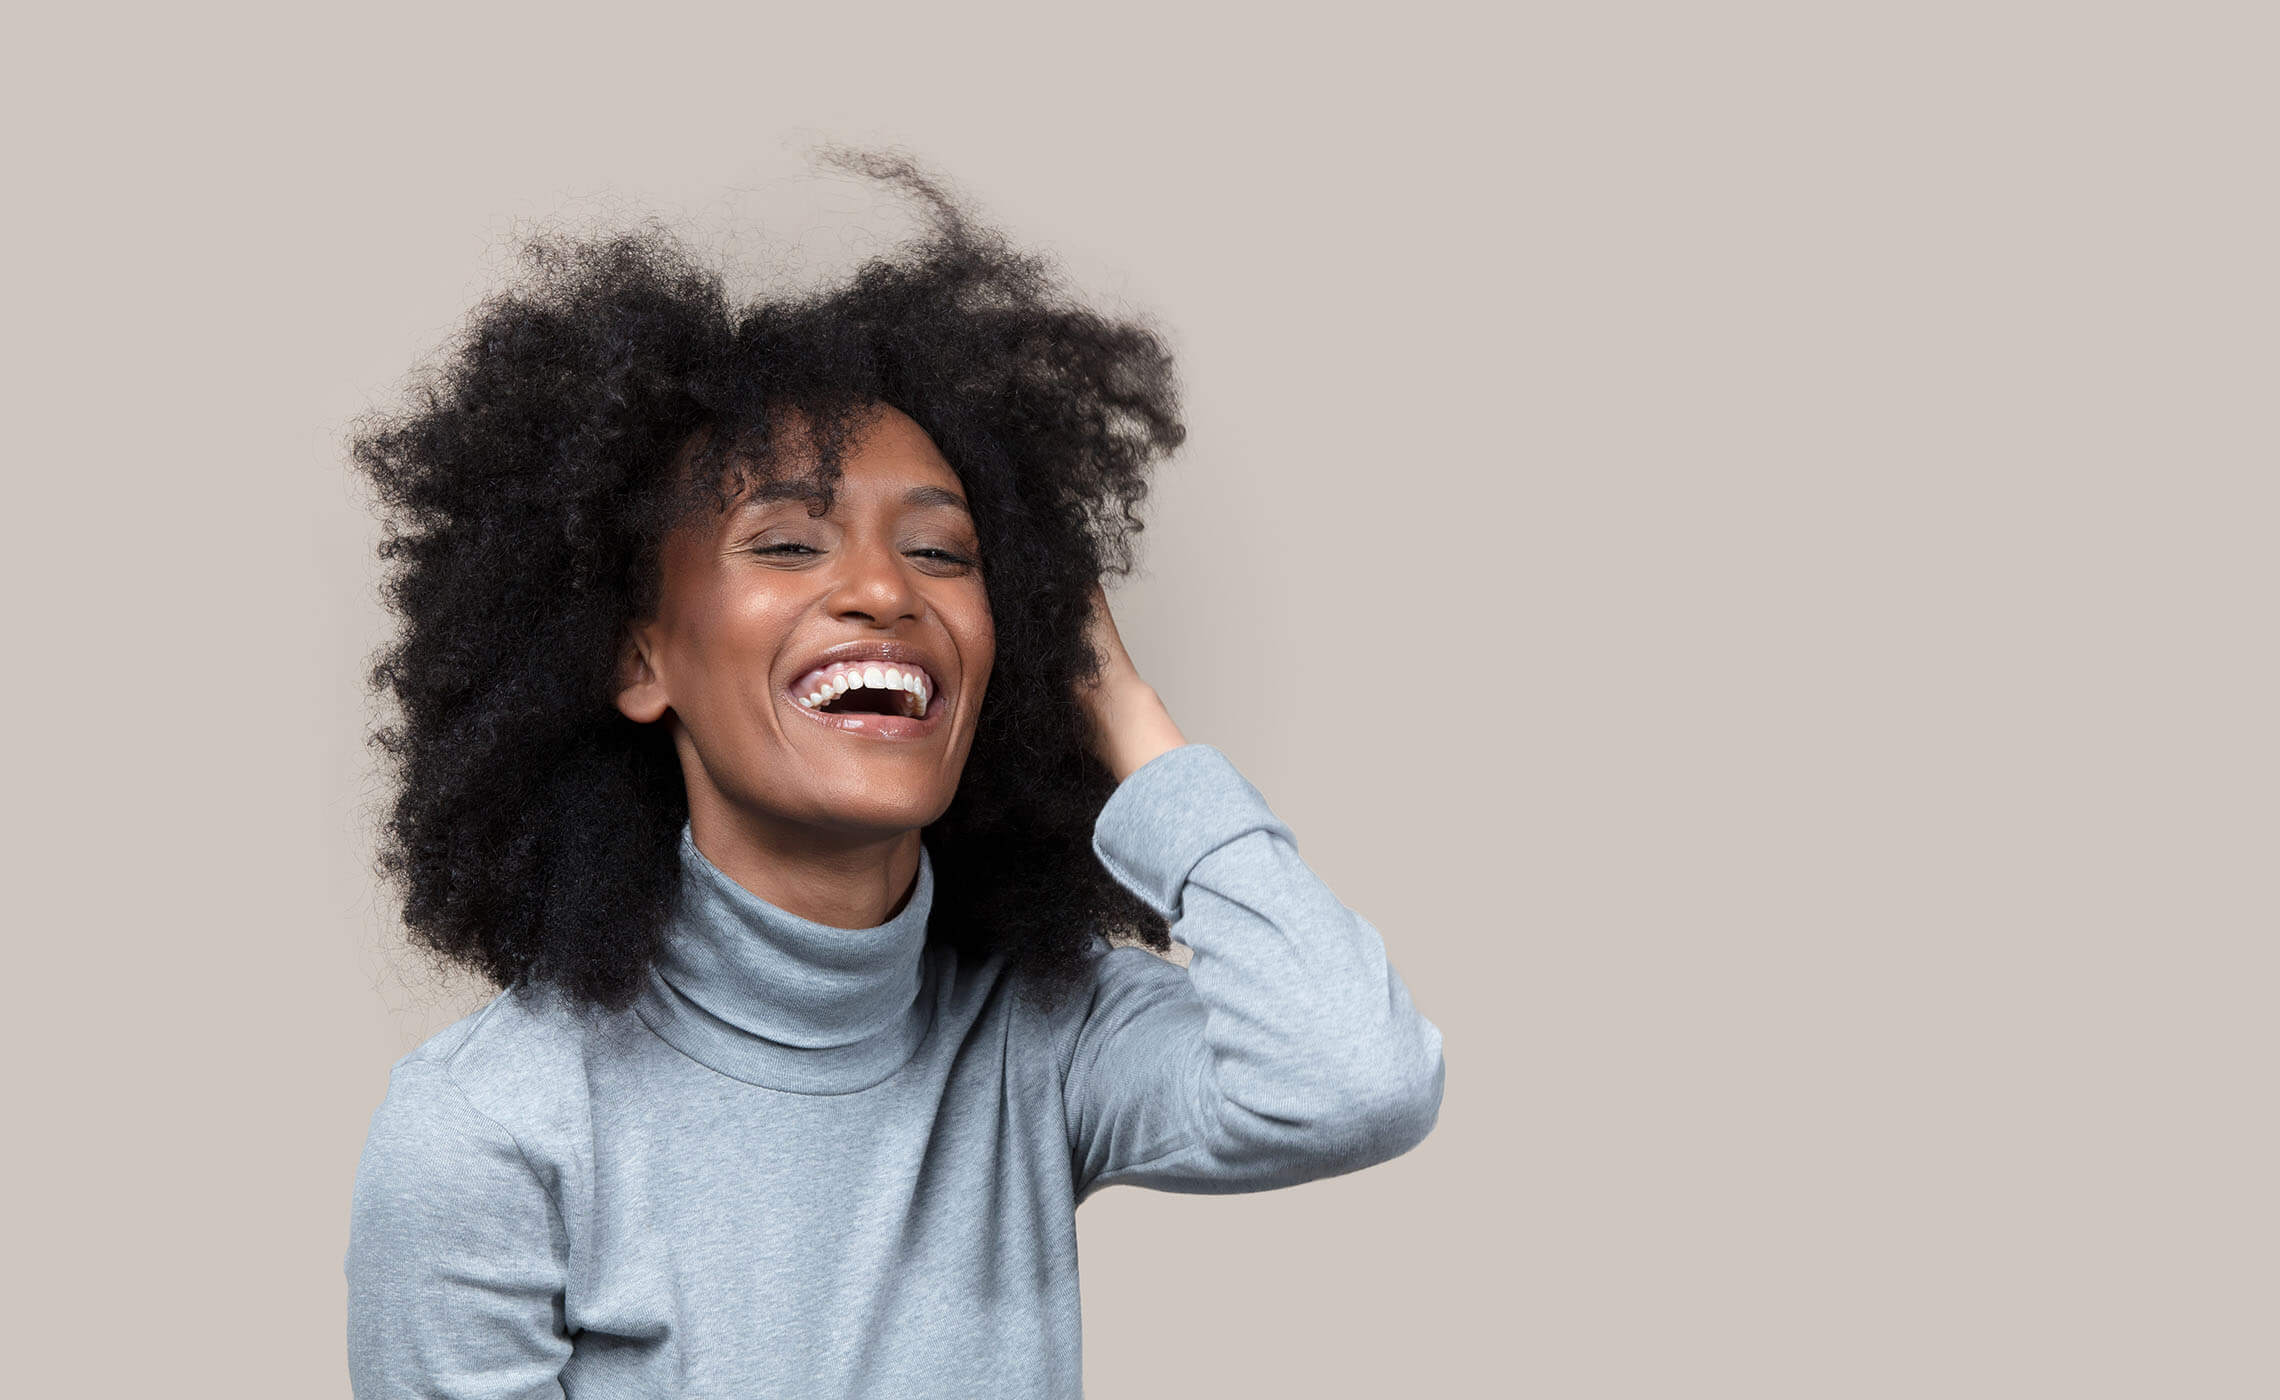 Woman running hand through her hair laughing.